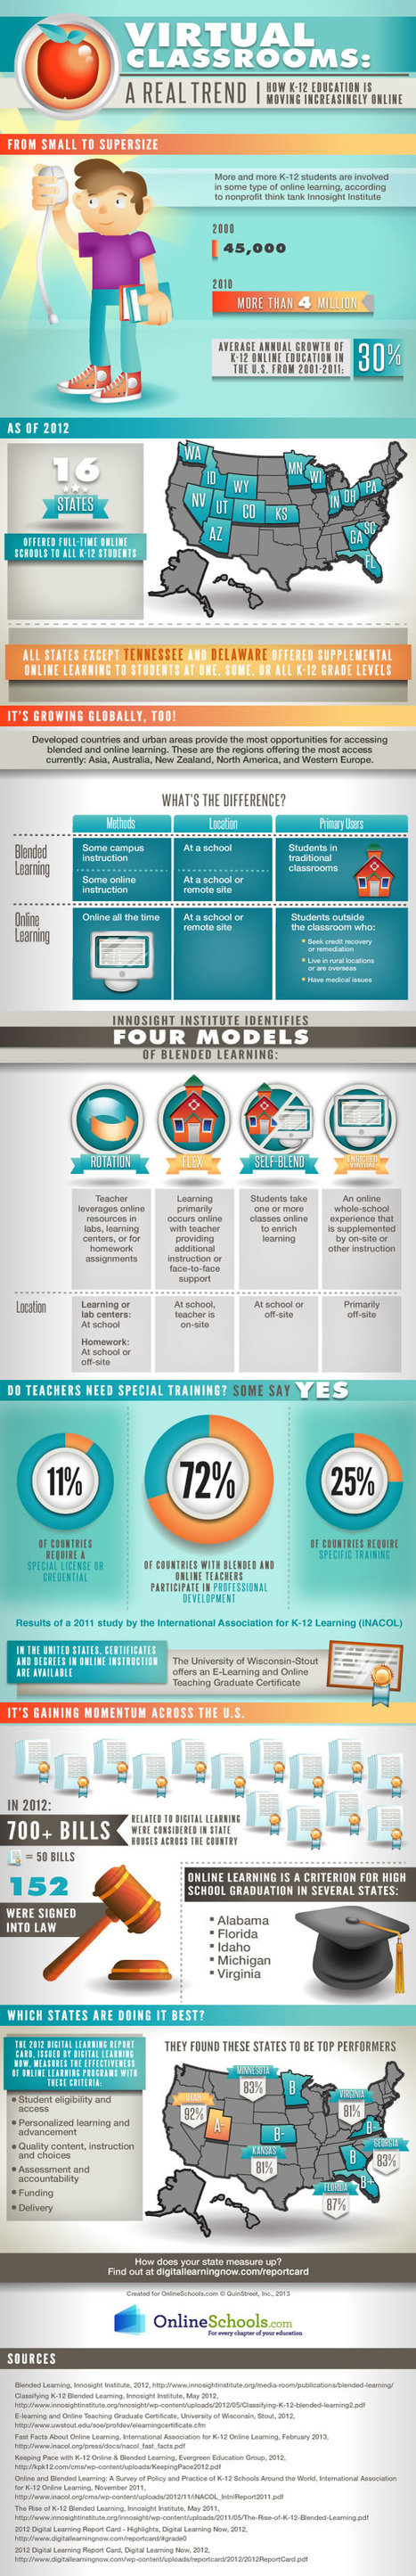 The Teacher's Quick Guide To Blended Learning [Infographic] | Learning With Social Media Tools & Mobile | Scoop.it